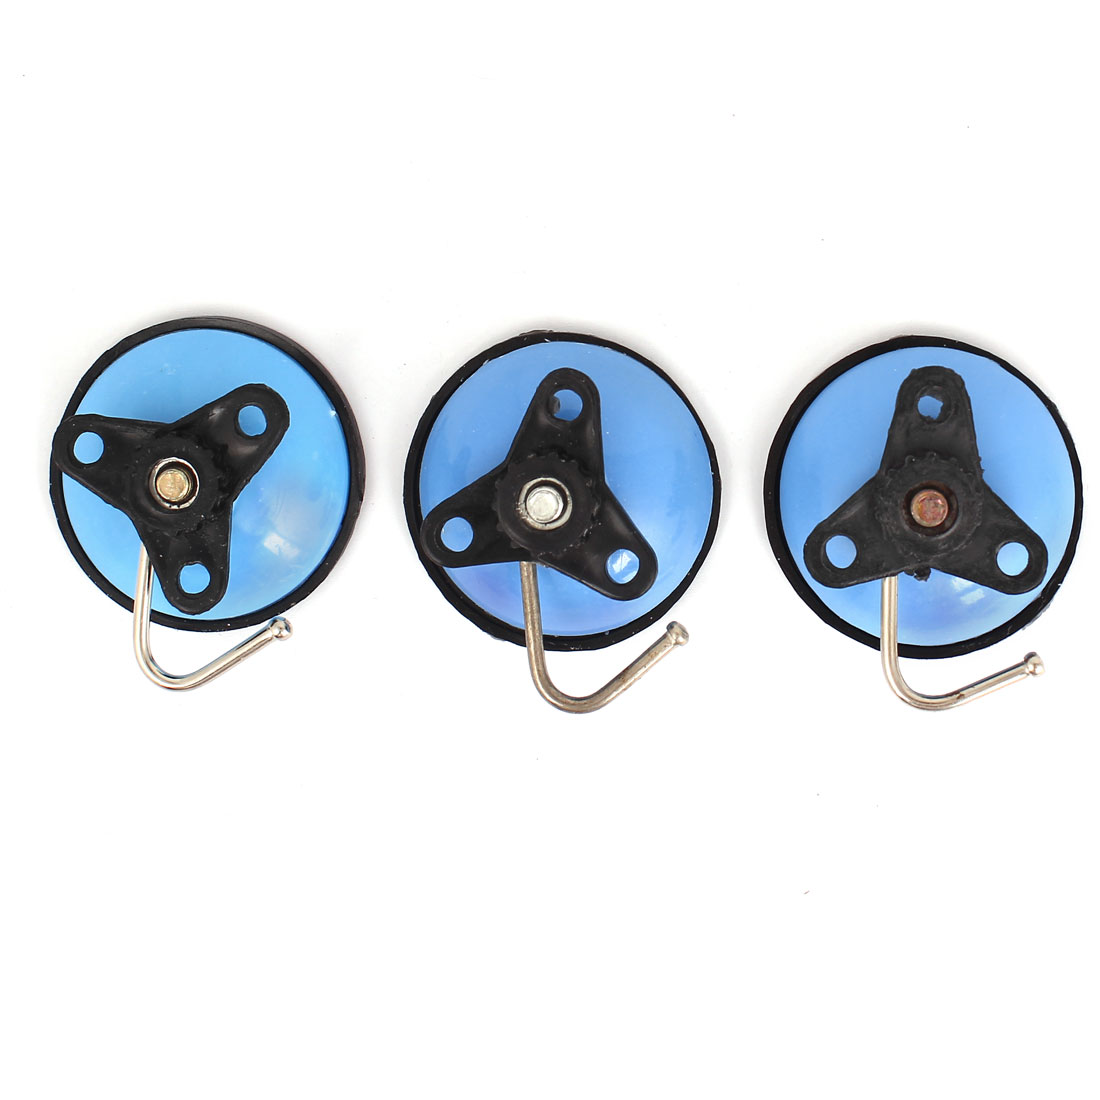 3pcs Kitchen Vacuum Suction Cup Hooks Bathroom Wall Hanger Blue Cyan